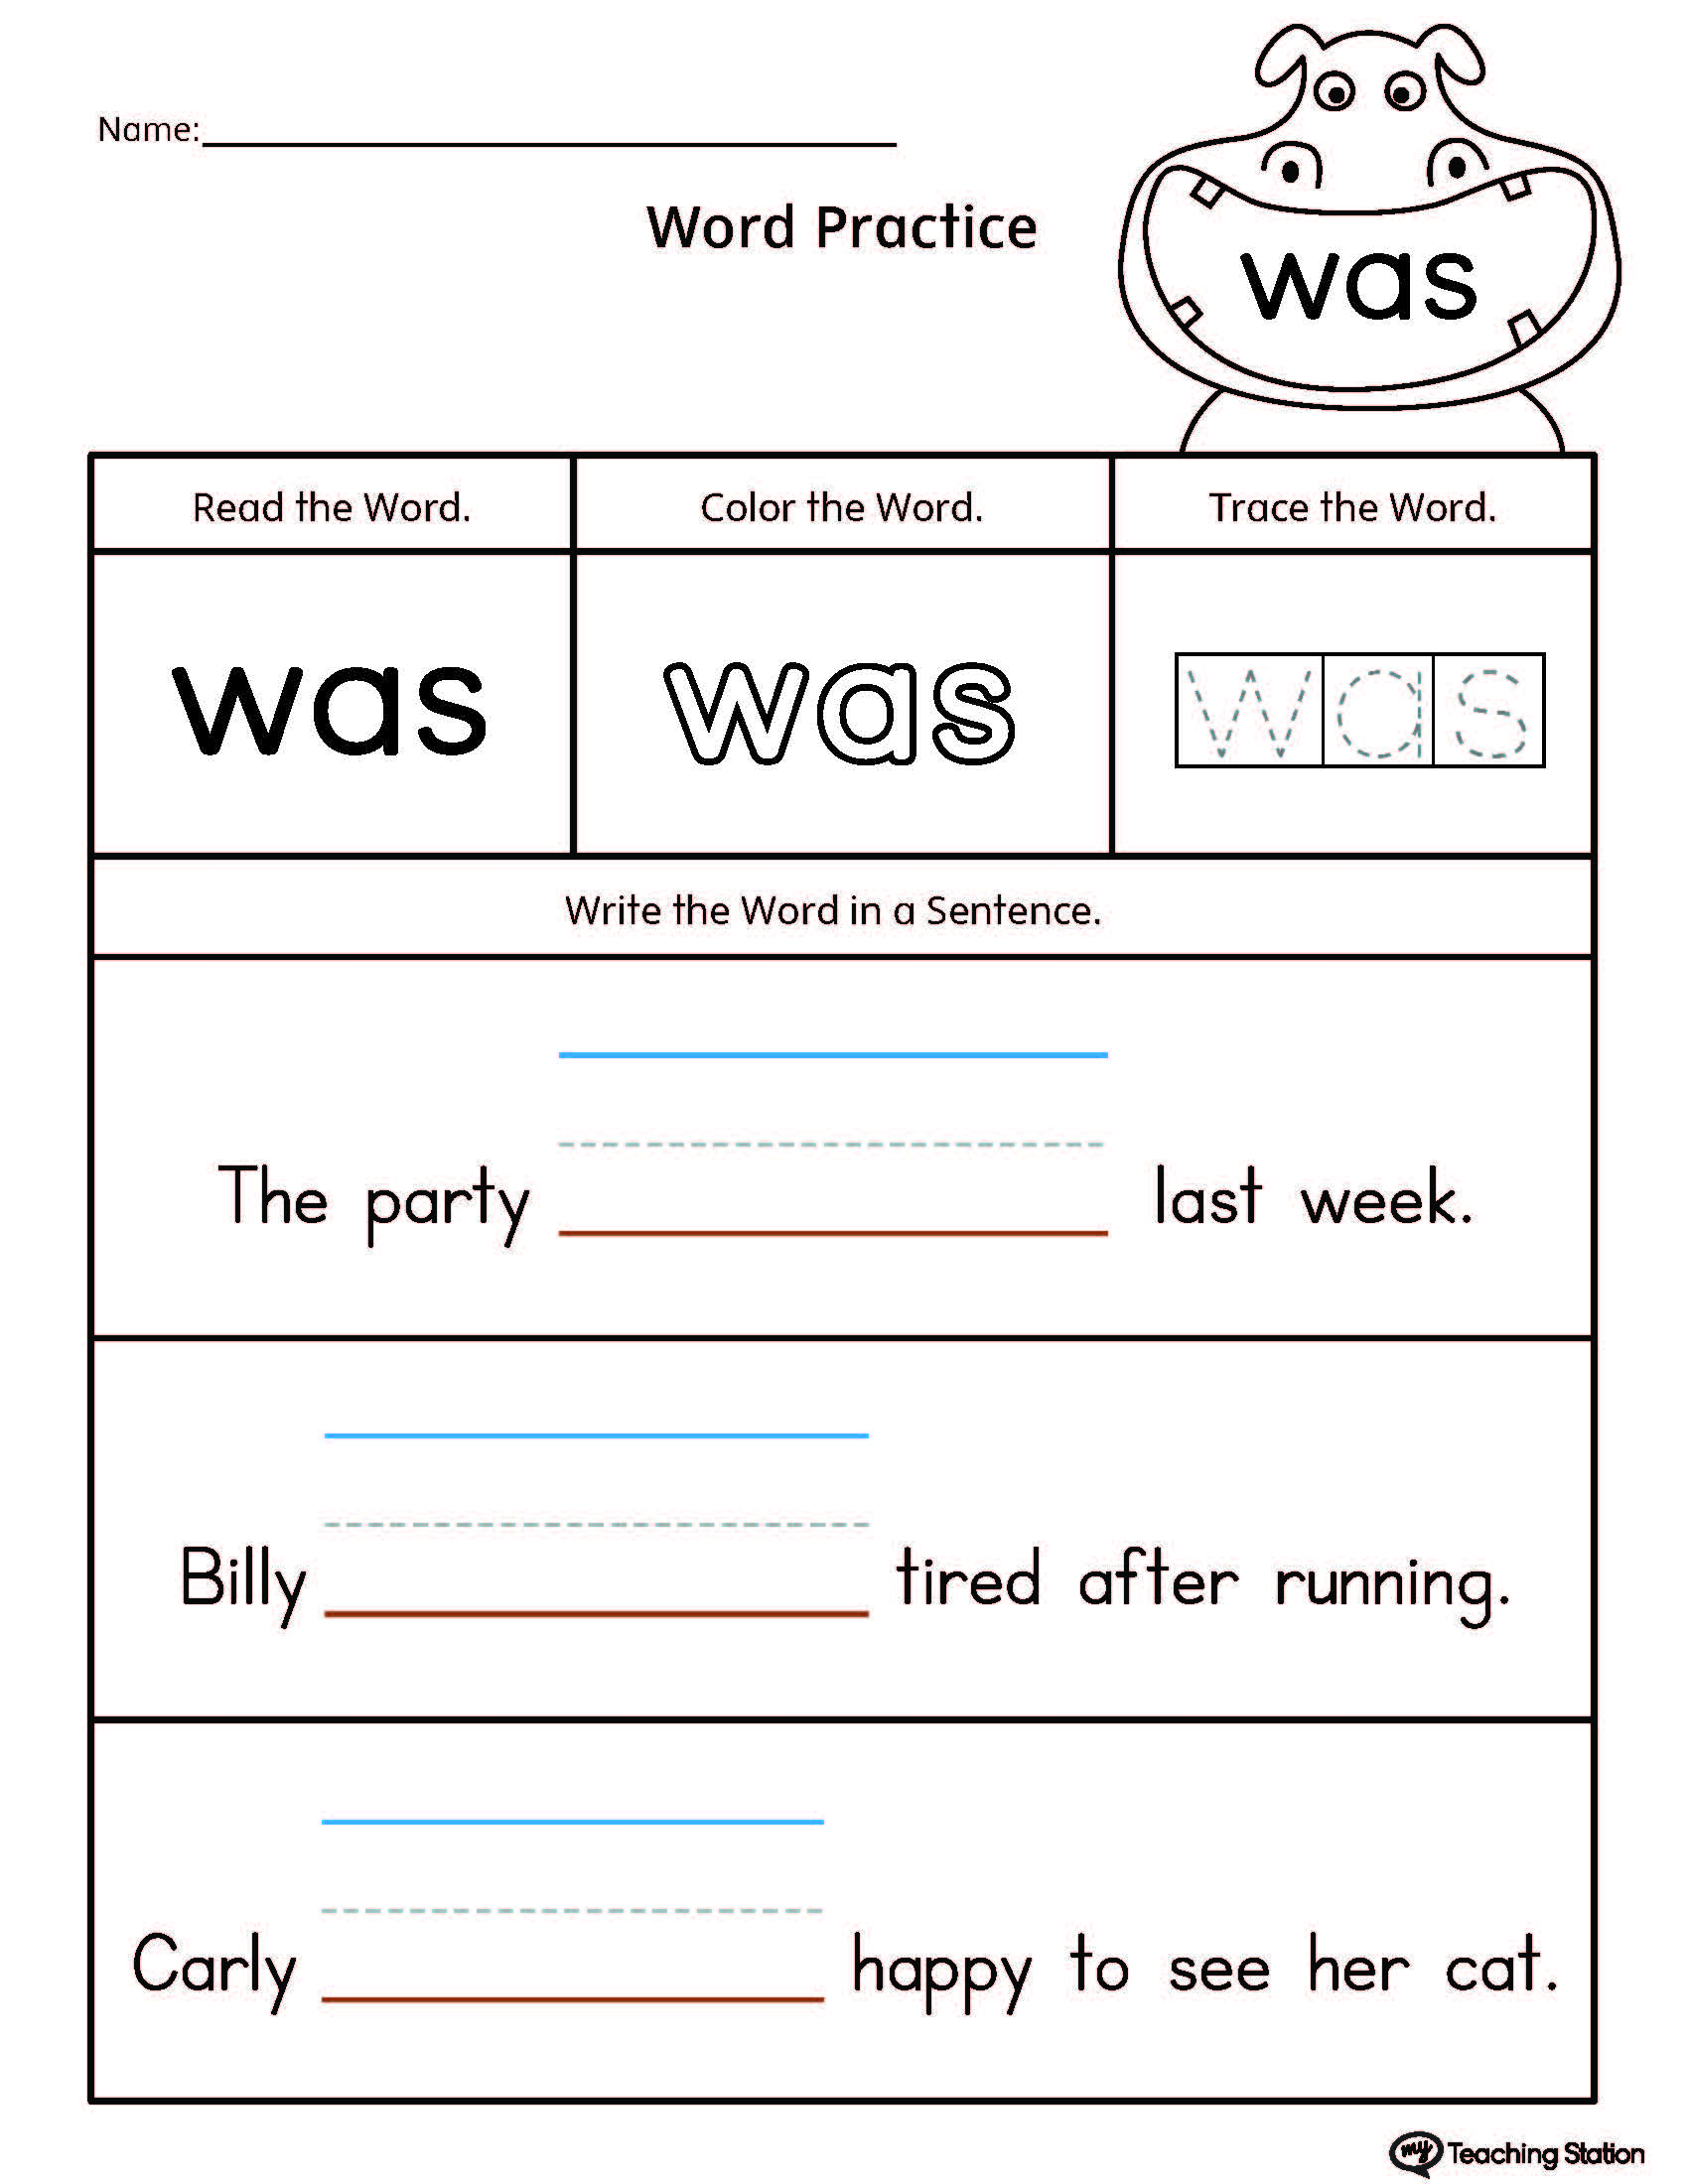 Worksheets Sight Word Worksheets build sentences using sight word was myteachingstation com downloadfree worksheet